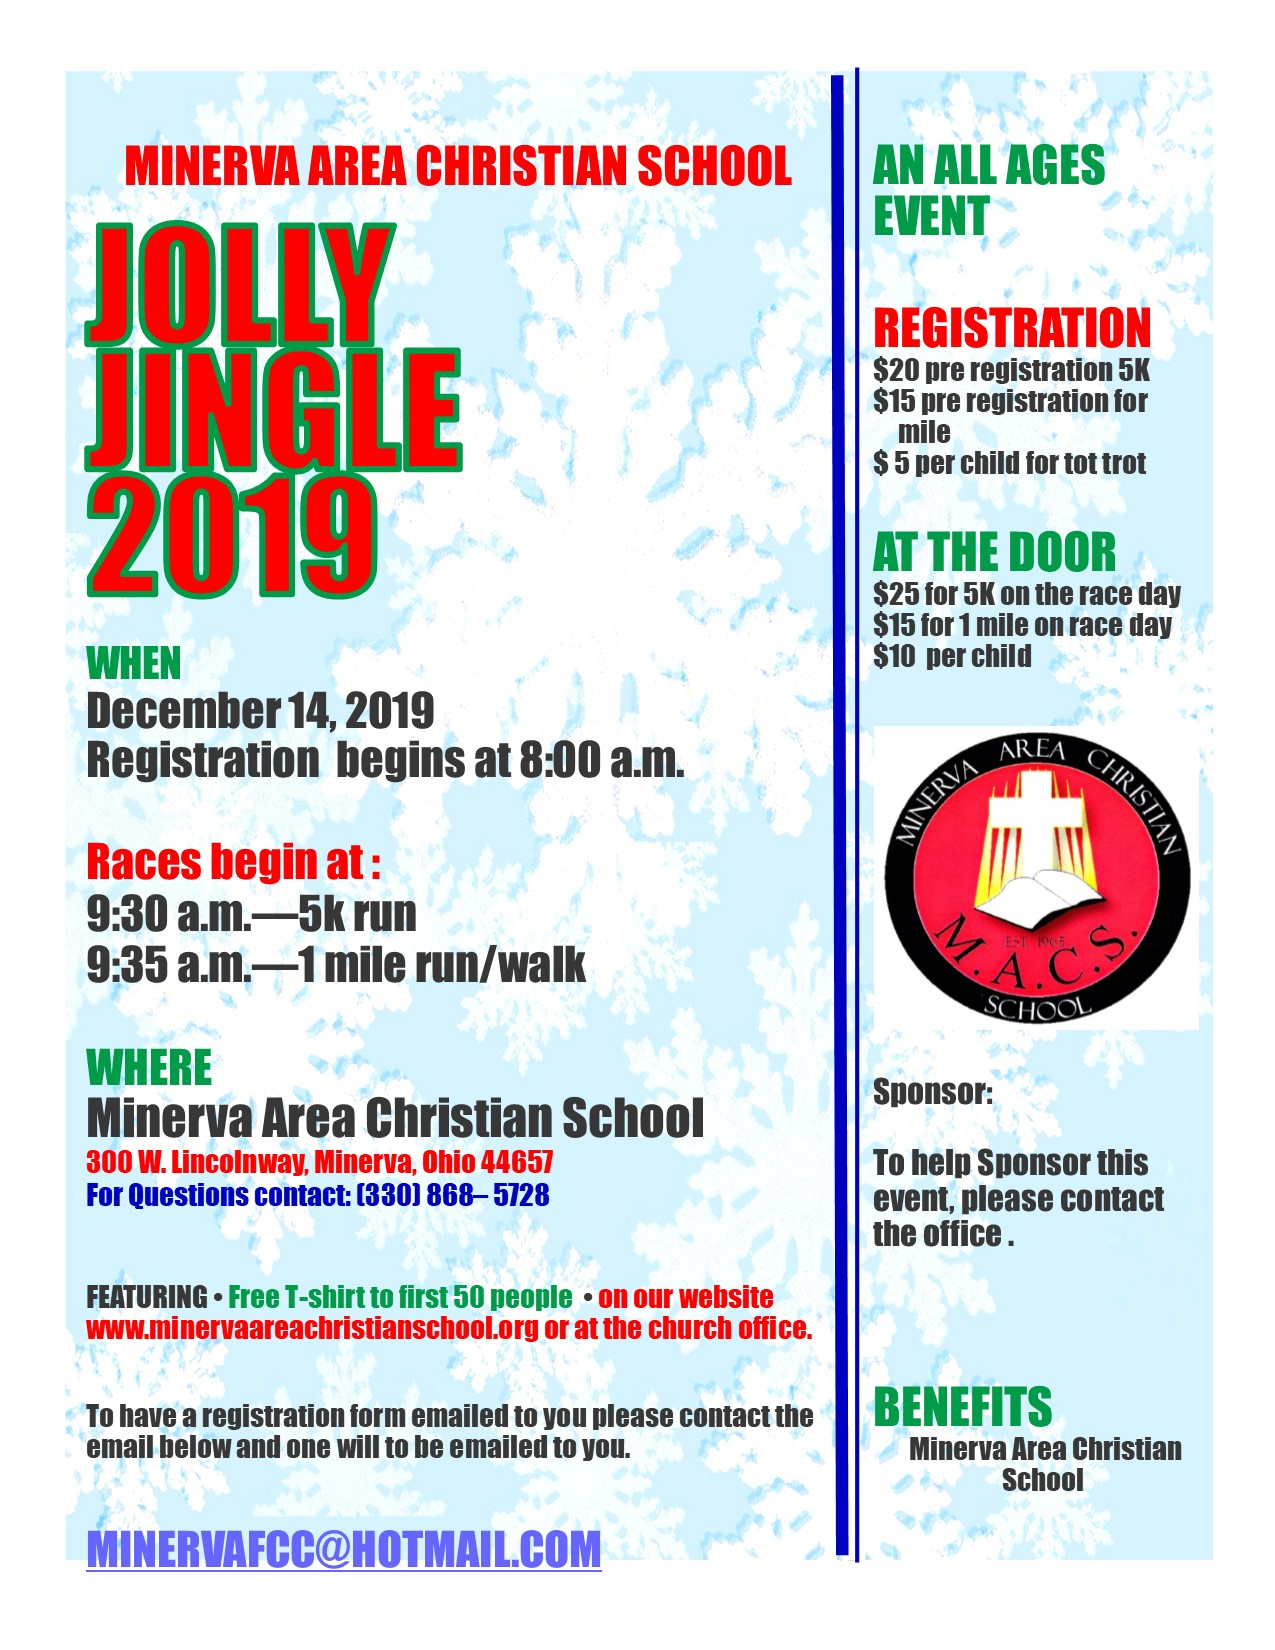 jolly Jingle 2019 flyer